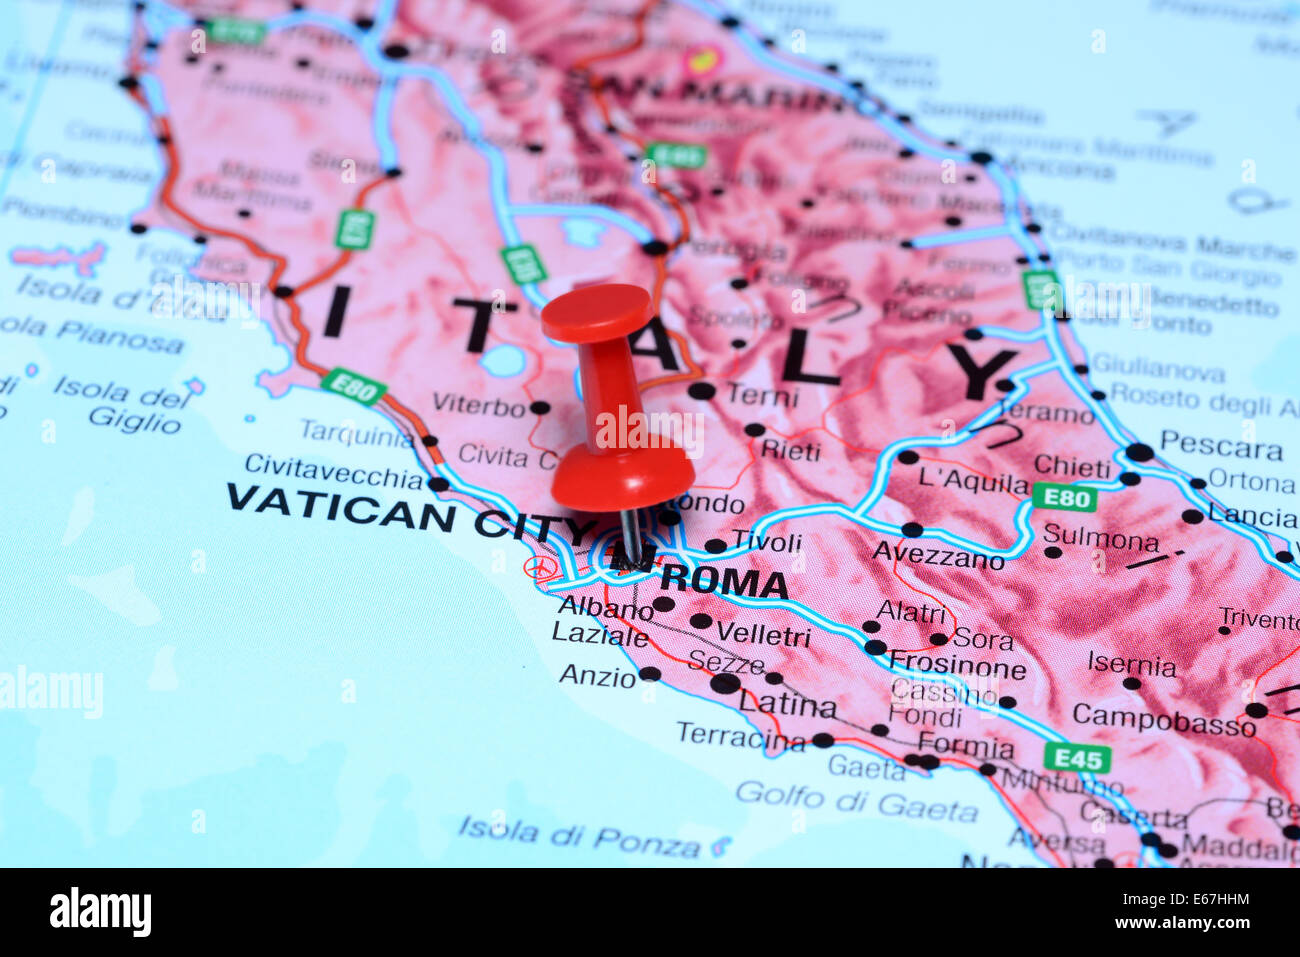 Rome Pinned On A Map Of Europe Stock Photo 72696896 Alamy